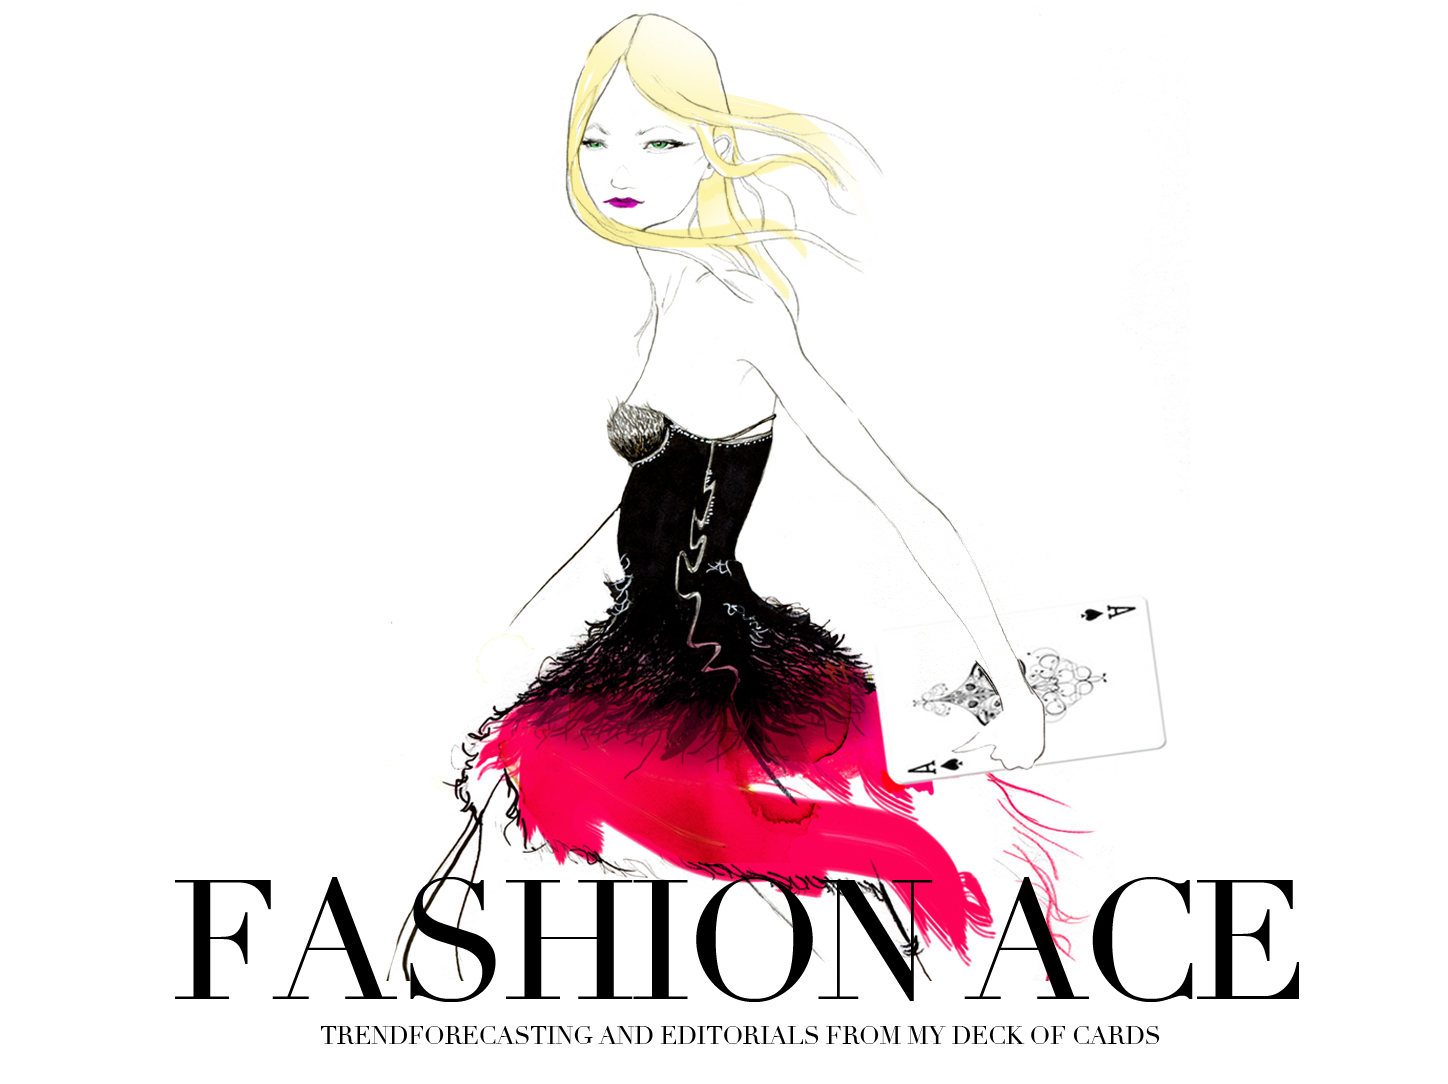 Fashion Ace